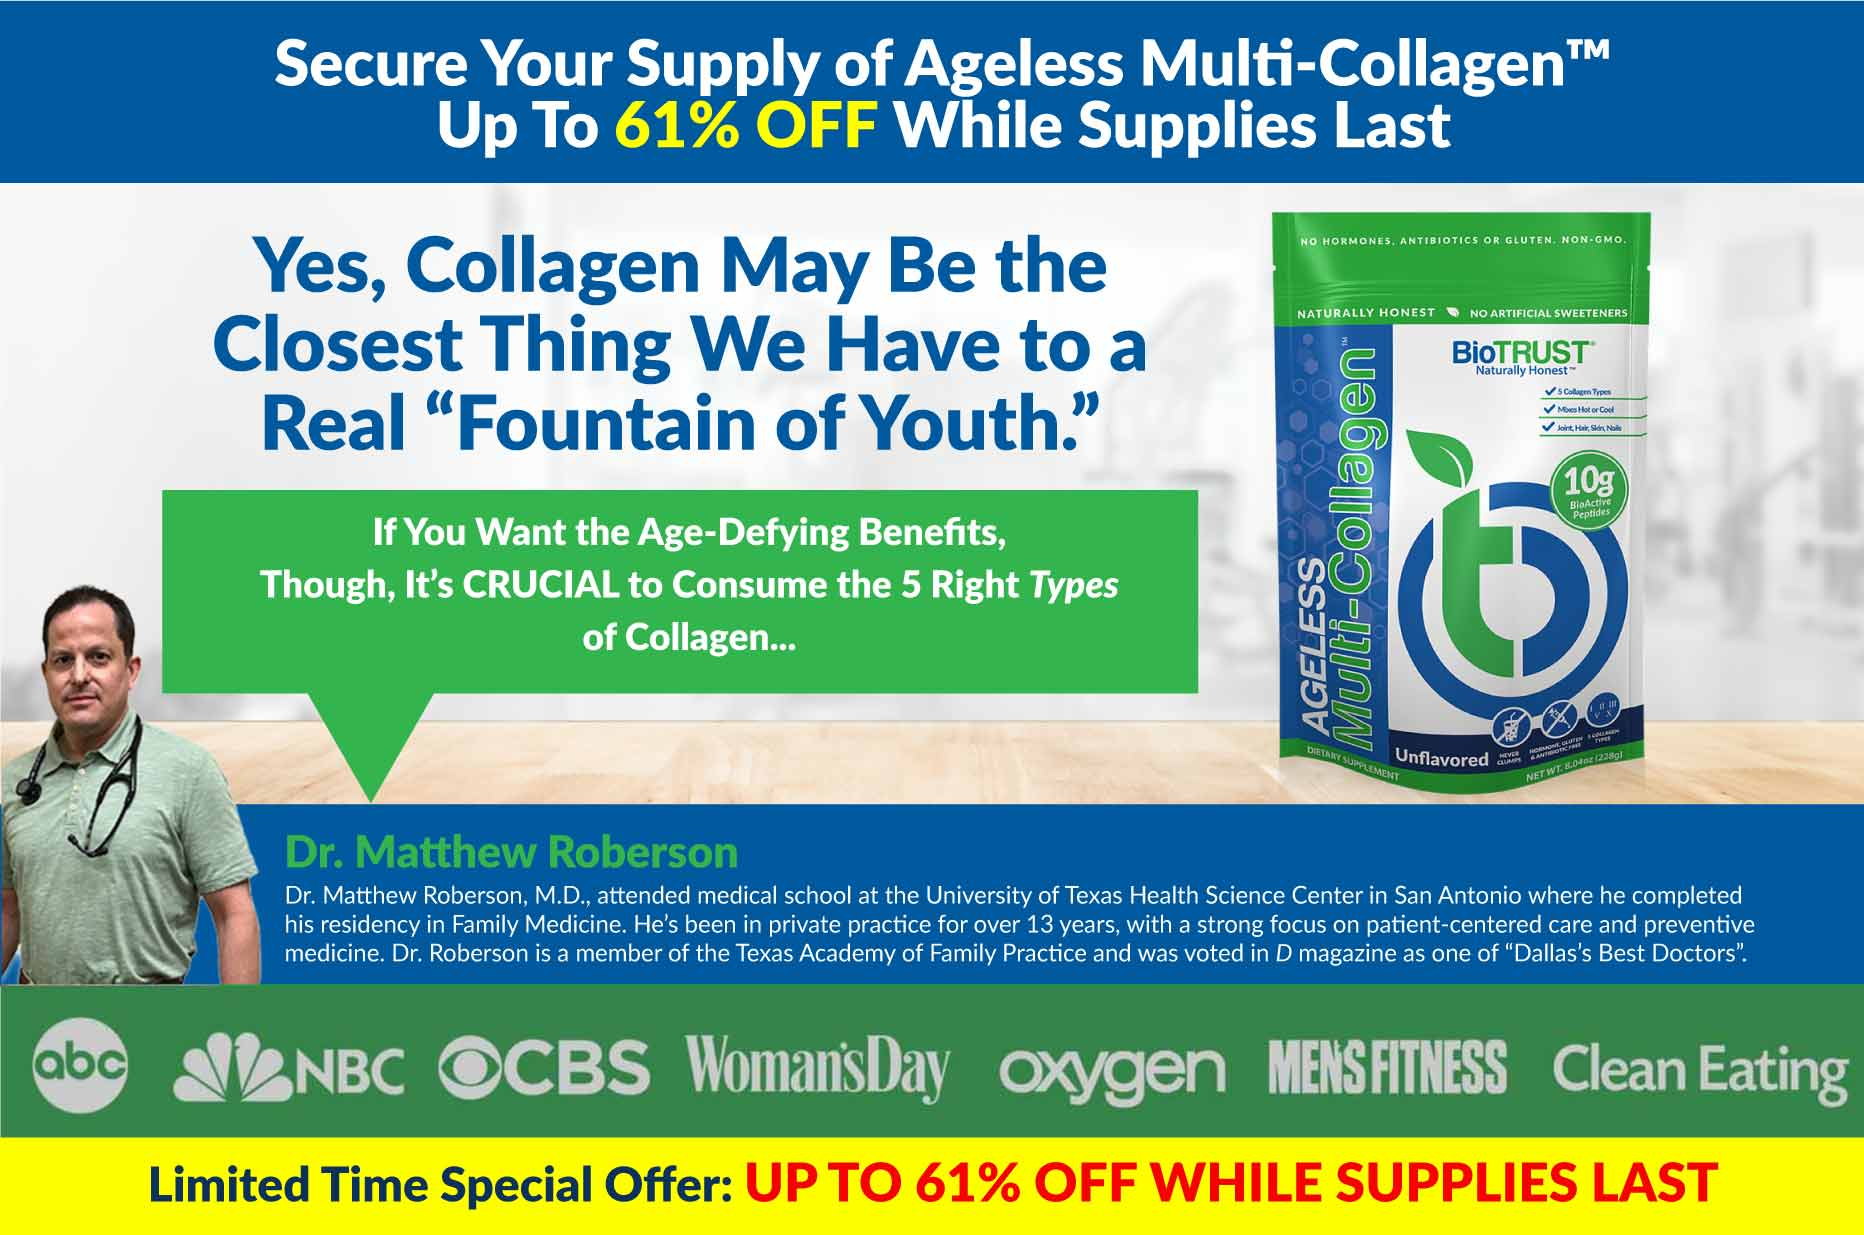 Ageless Multi-Collagen - 61% Off